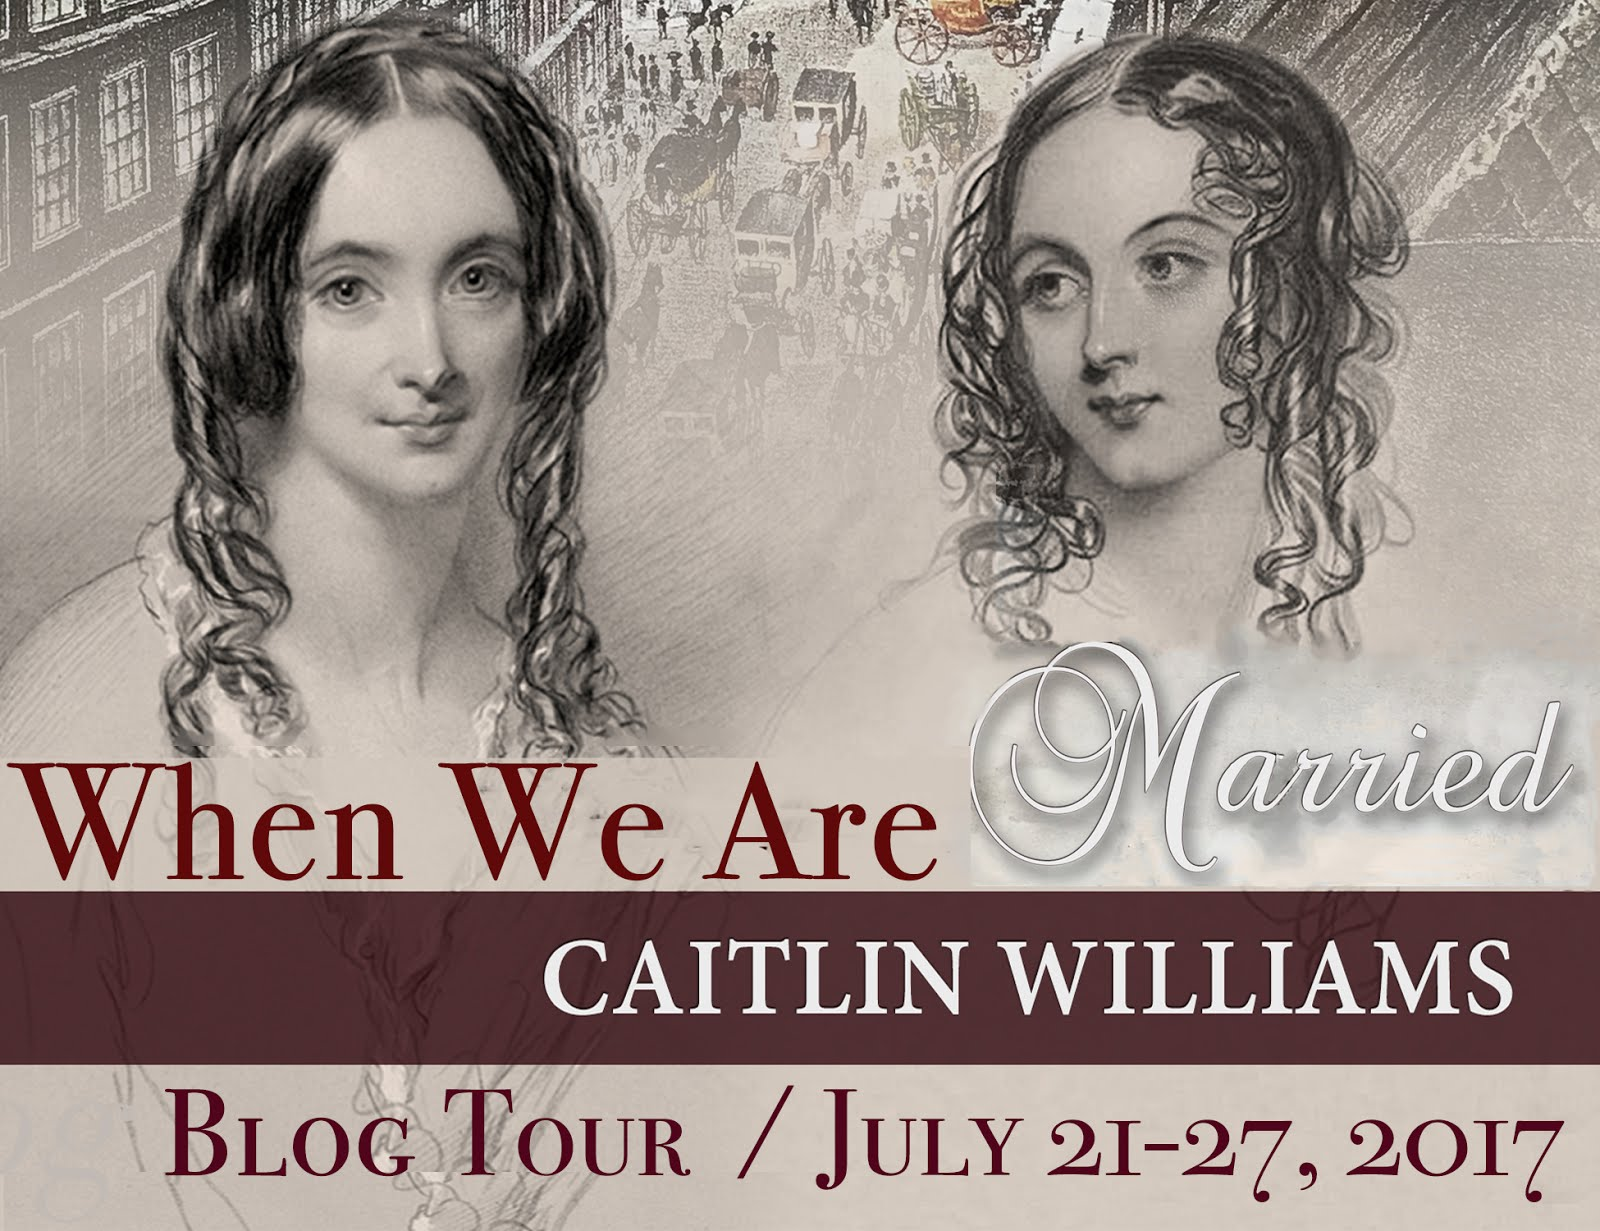 When We Are Married by Caitlin Wiliams - Blog Tour, Review and Giveaway